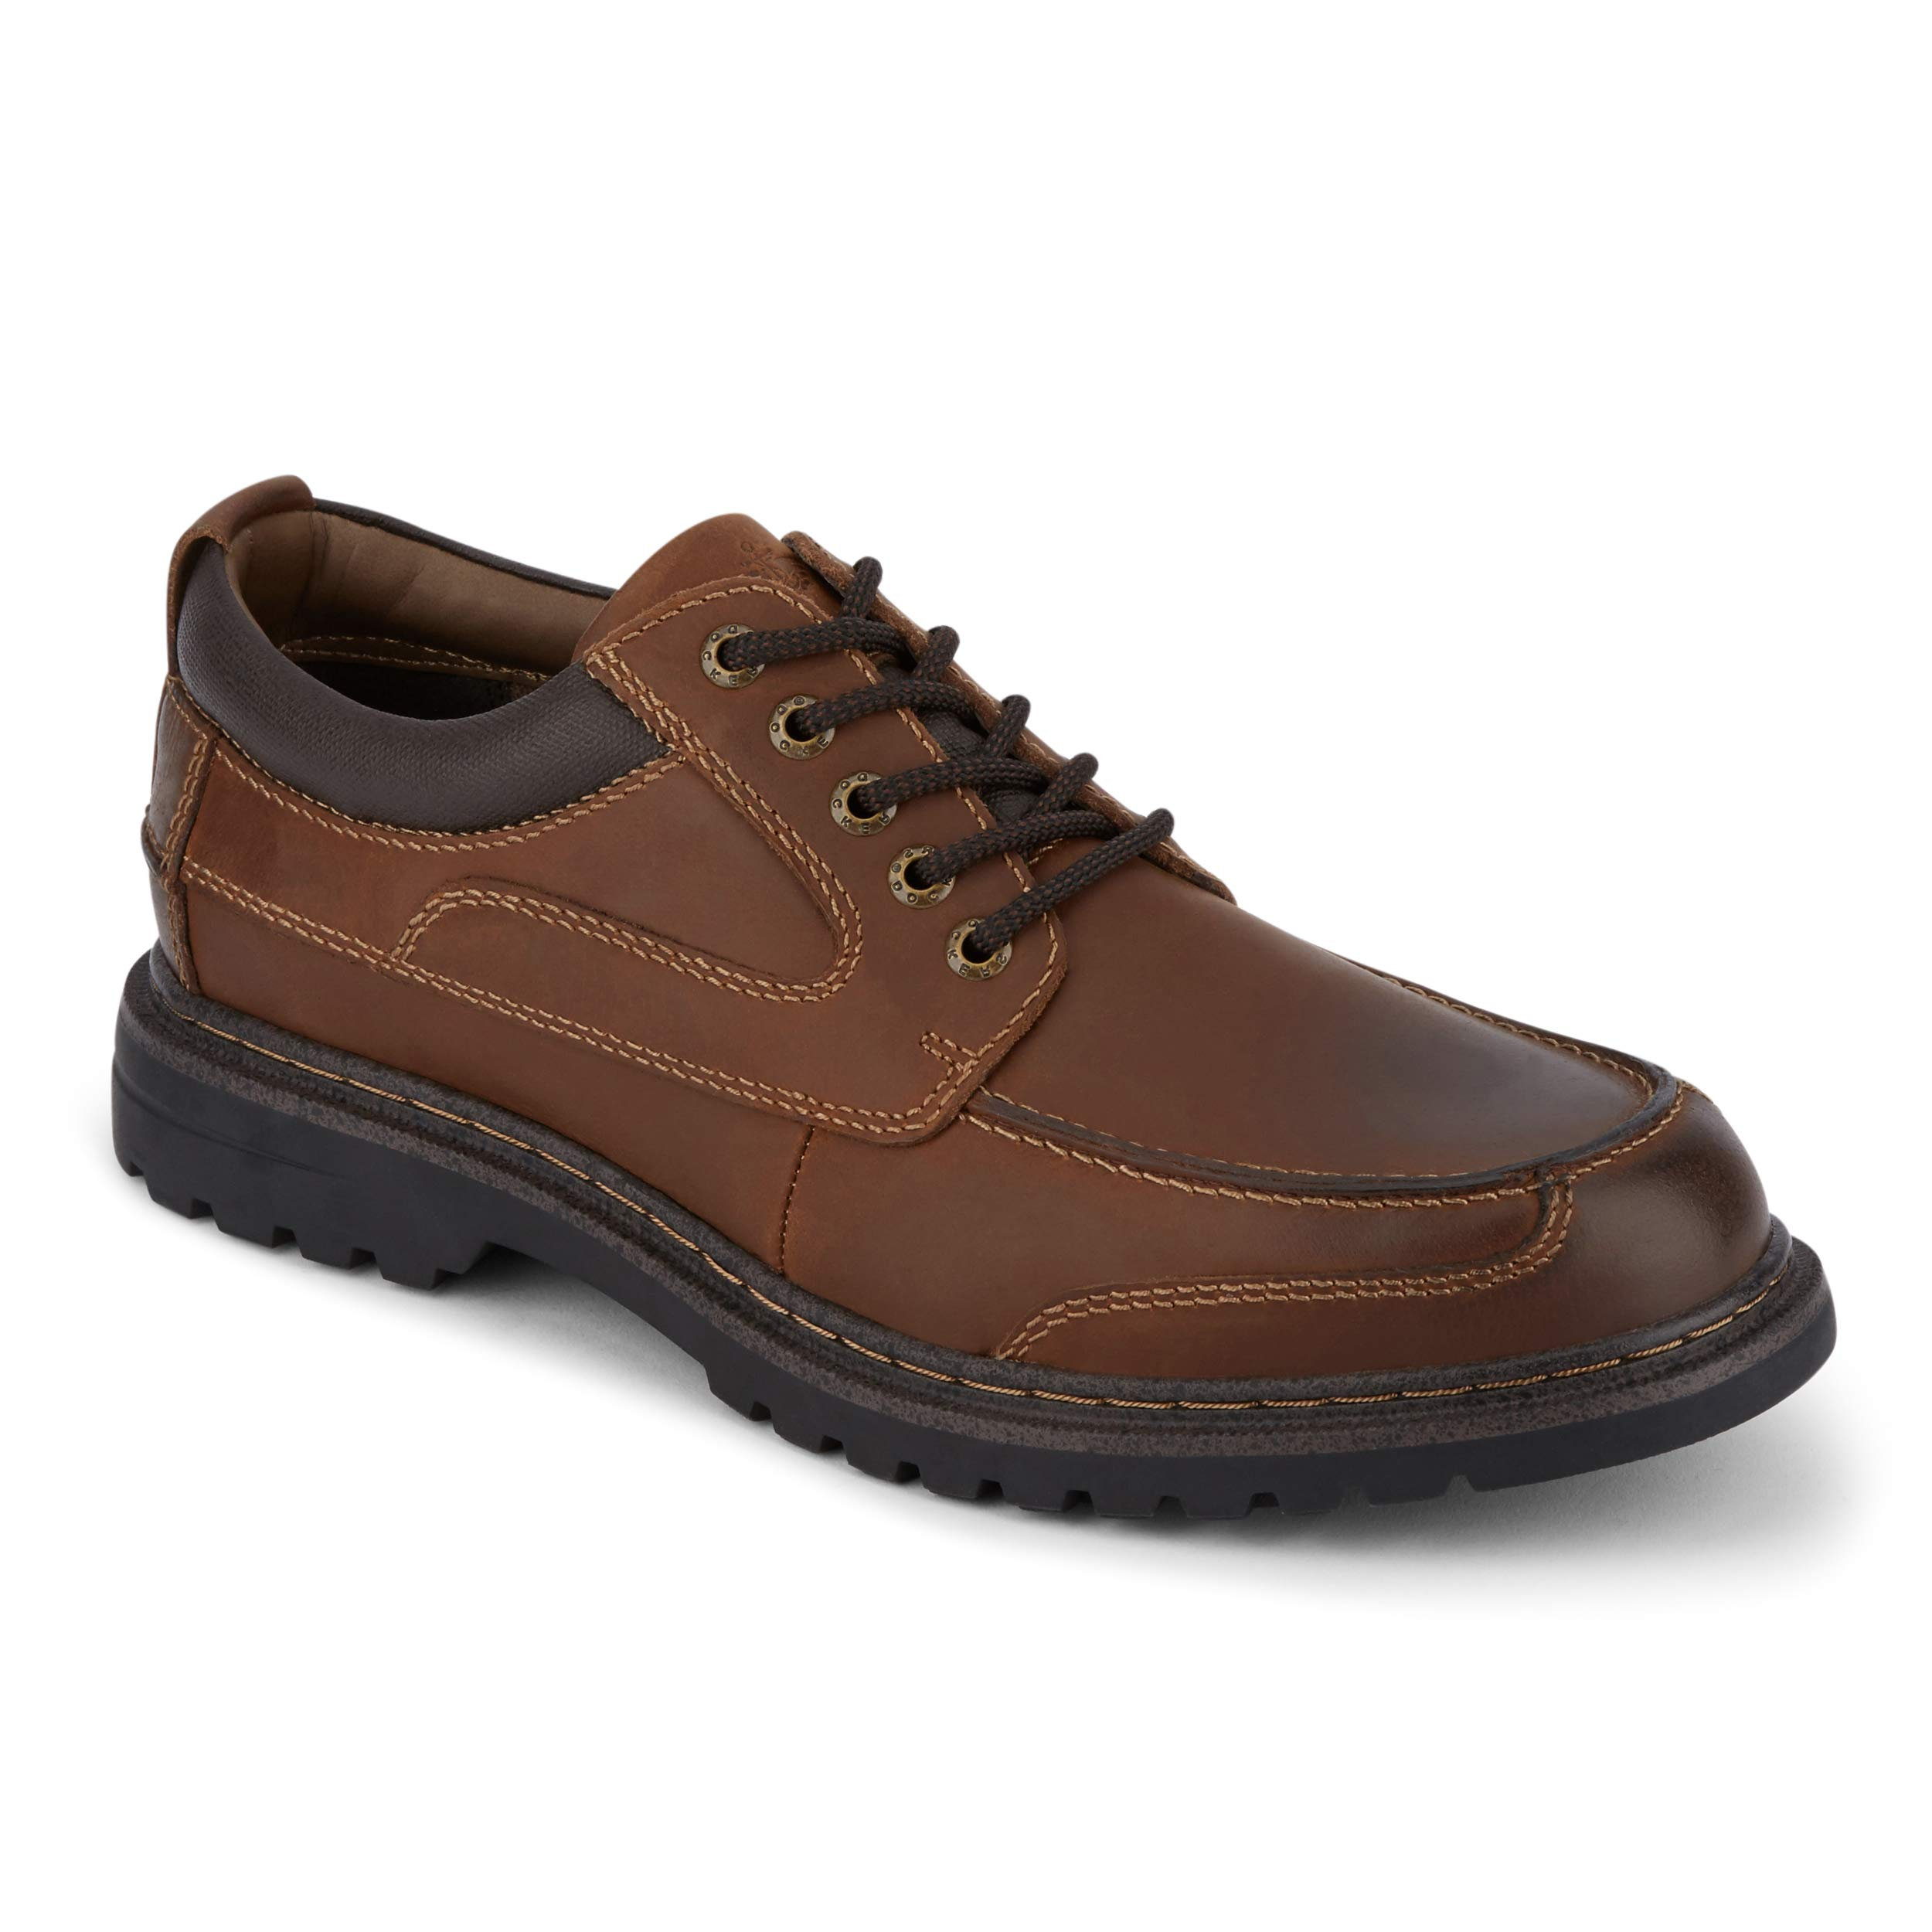 Dockers Mens Overton Leather Rugged Casual Oxford Shoe with NeverWet, Cognac, 9 W by Dockers